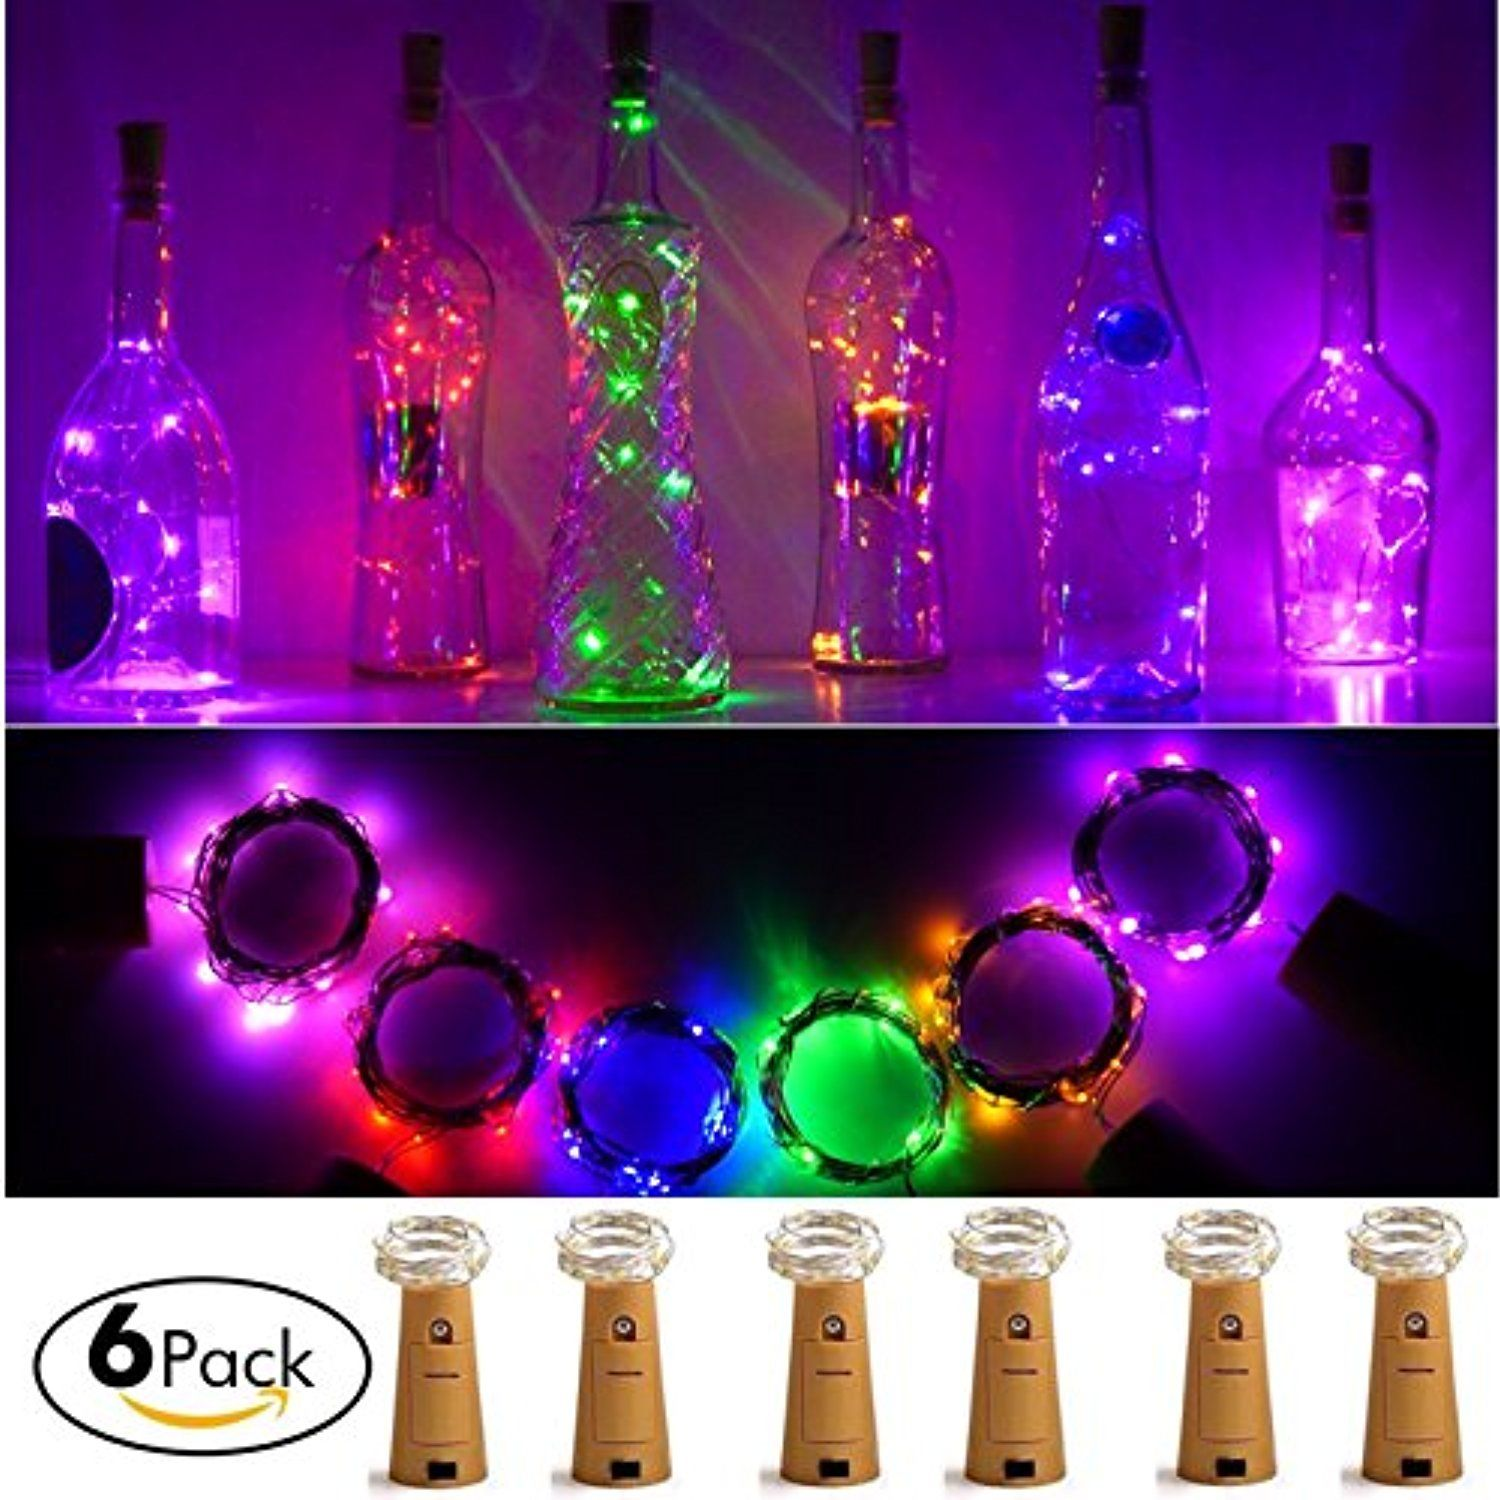 6 Pack Bottle Cork Lights 15 Led Wine Bottle Battery